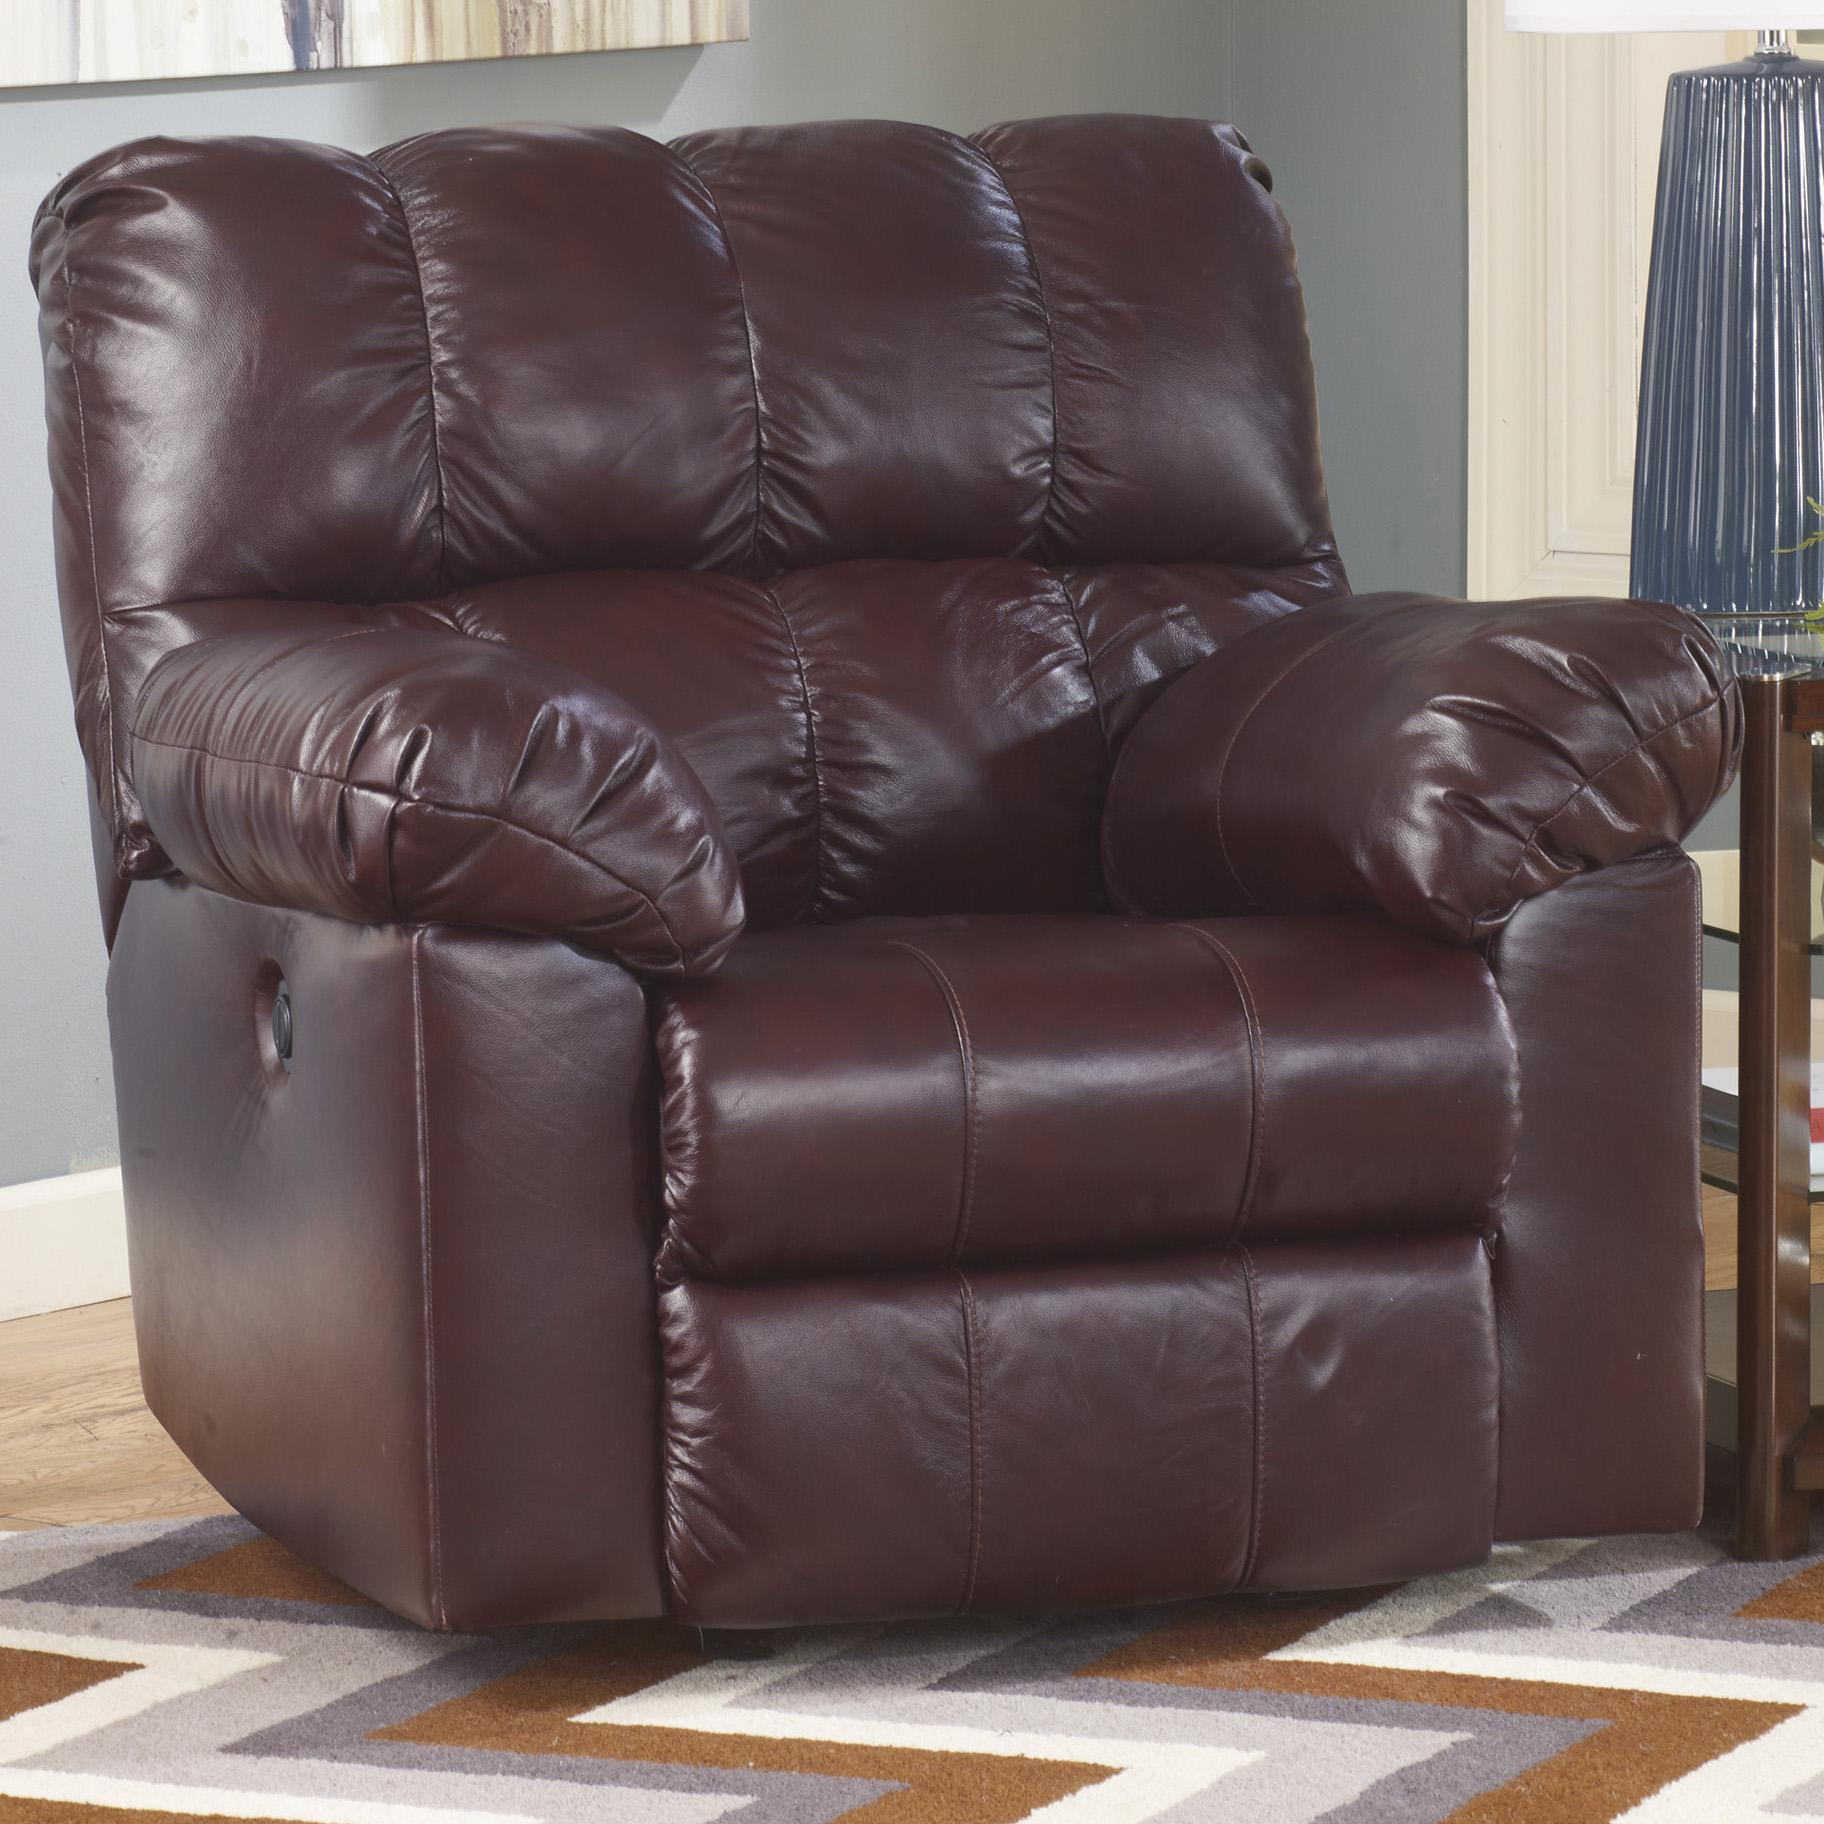 Signature Design by Ashley Kennard - Burgundy Power Rocker Recliner - Item Number: 2900098